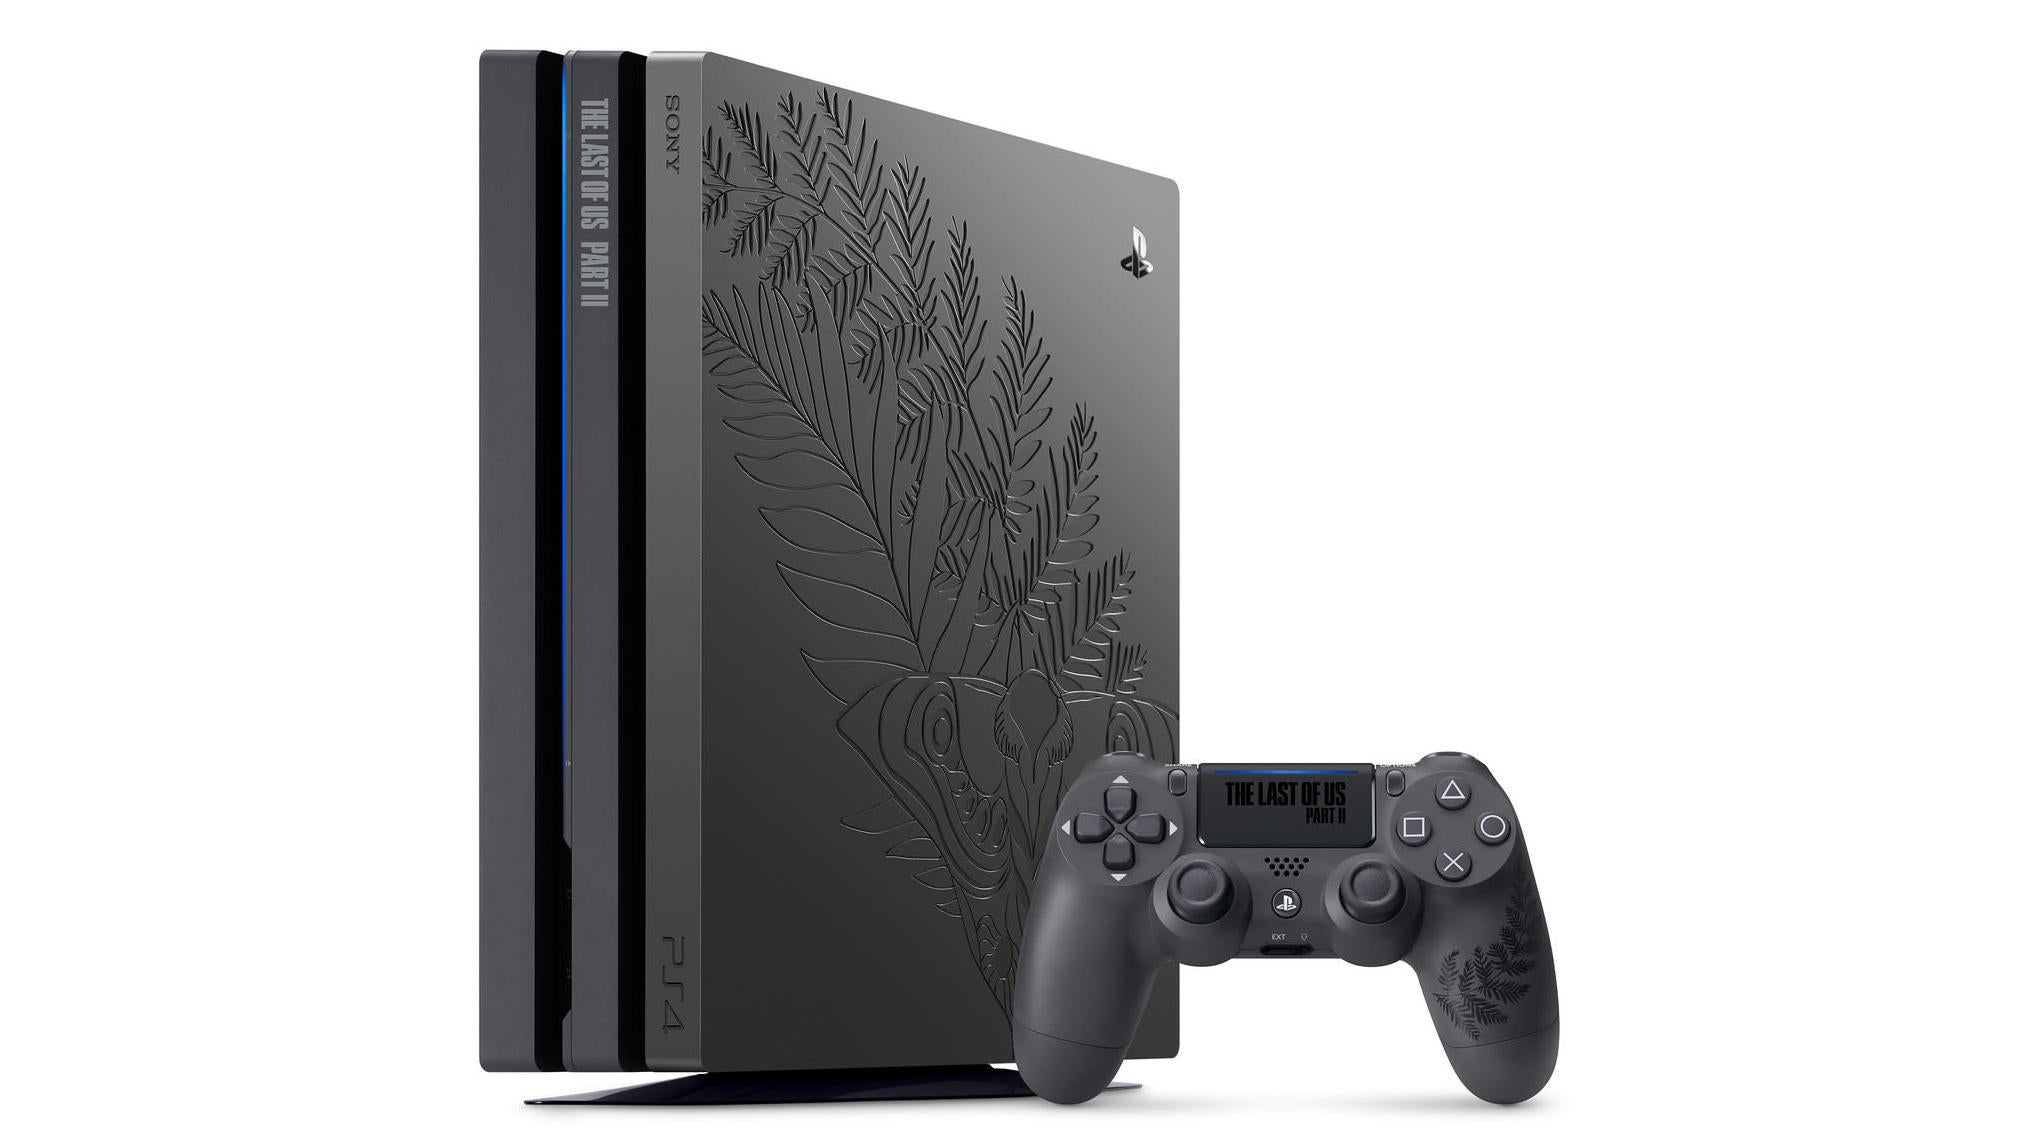 Sony Is Releasing A Last Of Us II PS4 Pro And It Looks Extremely Lowkey